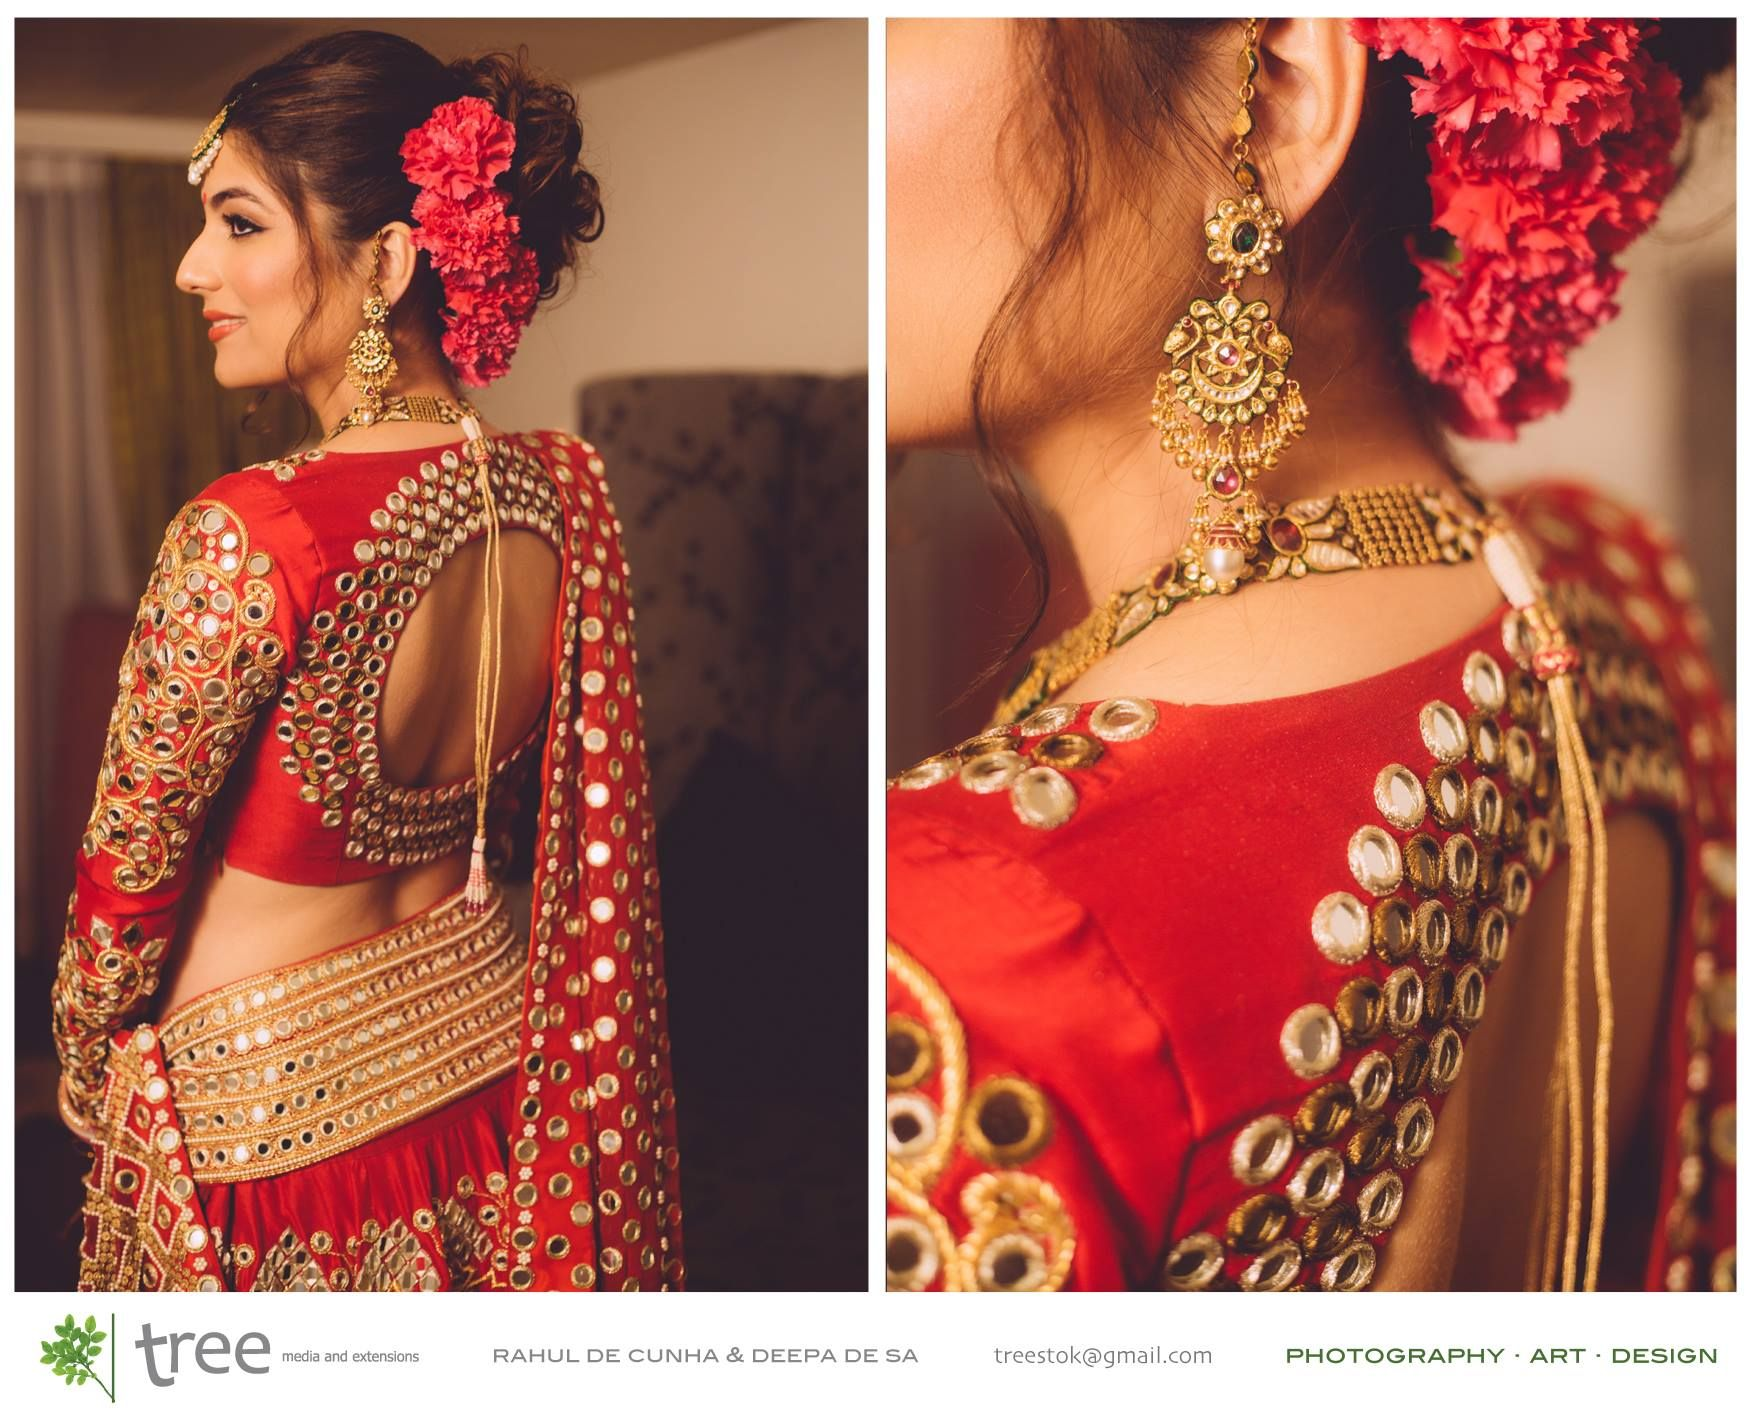 Lehenga blouse design in golden color and mirror work - Papadontpreach Have Got Very Unique Collection Of Mirror Work Sarees And Lehengas But Their Mirror Works Are The Best Among Their Collection For Me